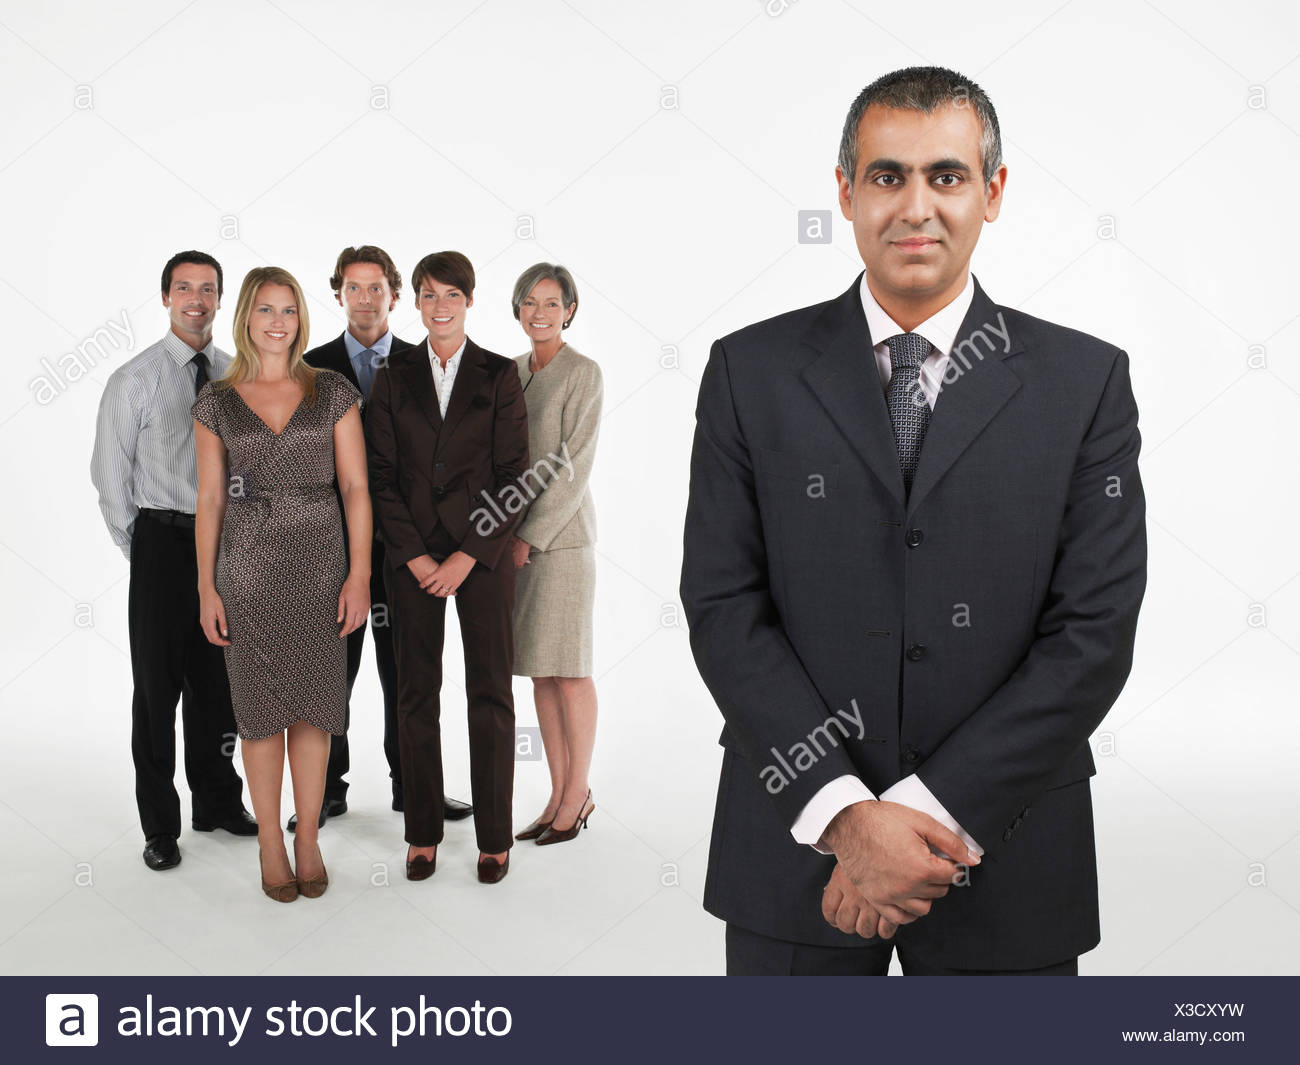 Proud Businessman, group behind - Stock Image